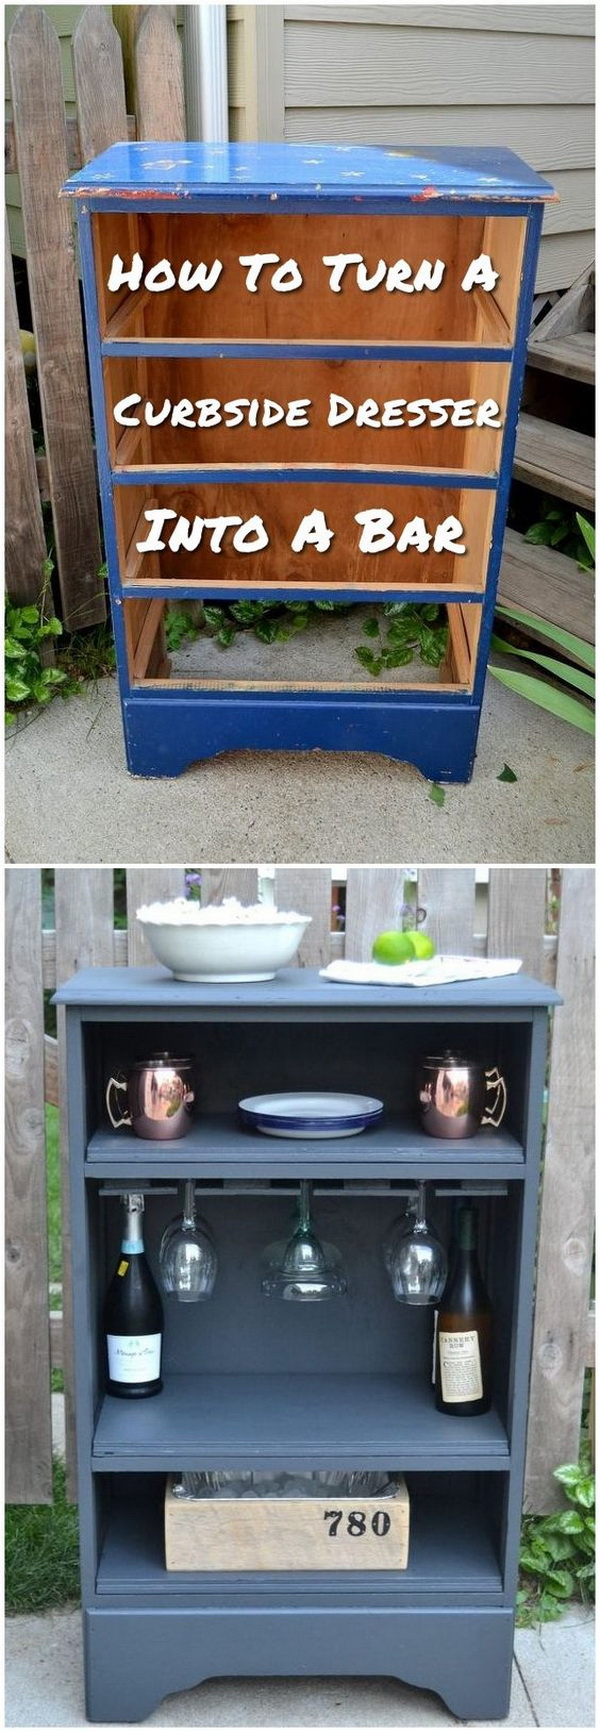 Awesome DIY Furniture Makeover Ideas: Genius Ways to ...